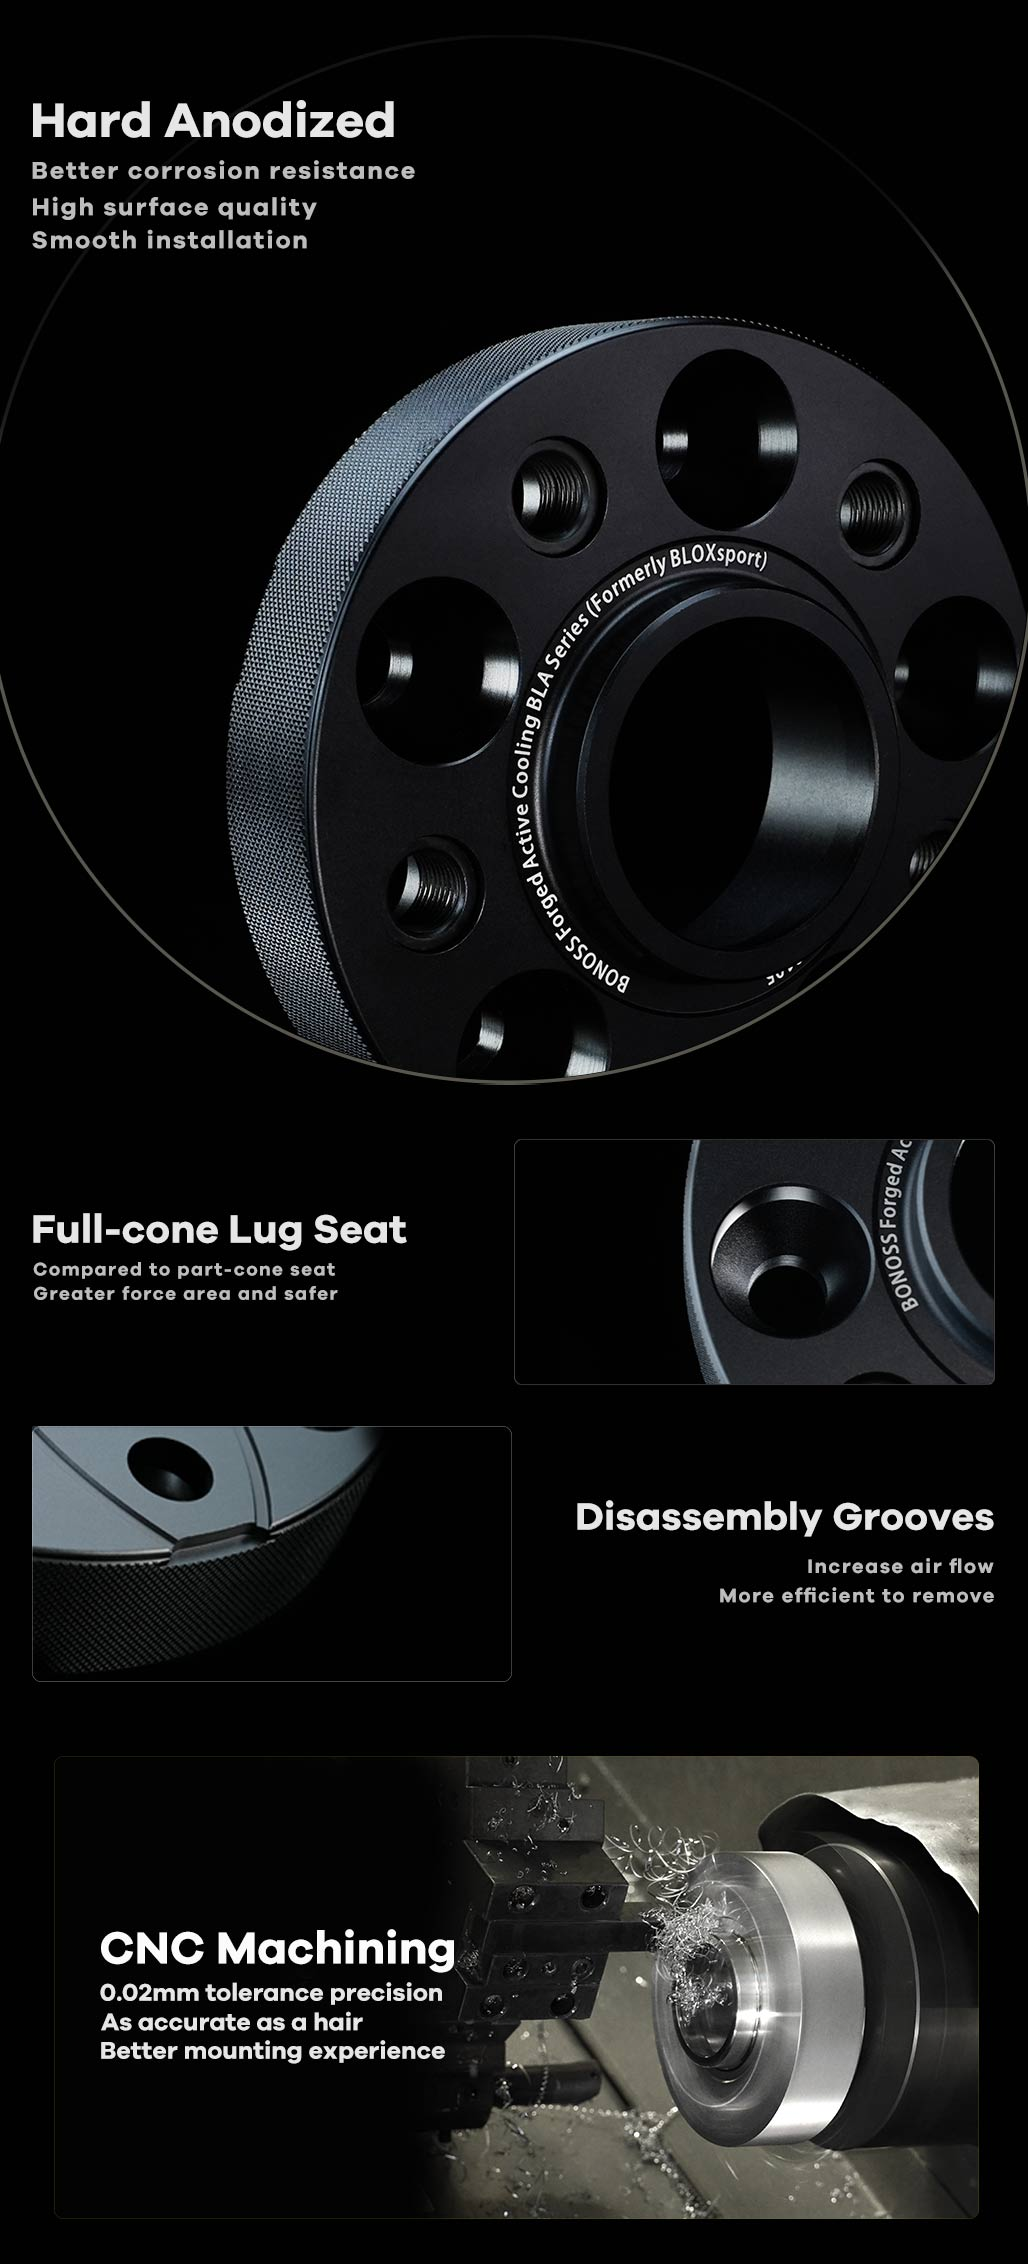 BONOSS Forged Active Cooling AL6061-T6 Hubcentric Wheel Spacers PCD5x108 CB67.1 for Ferrari 360 Spider 2000-2005 (3)